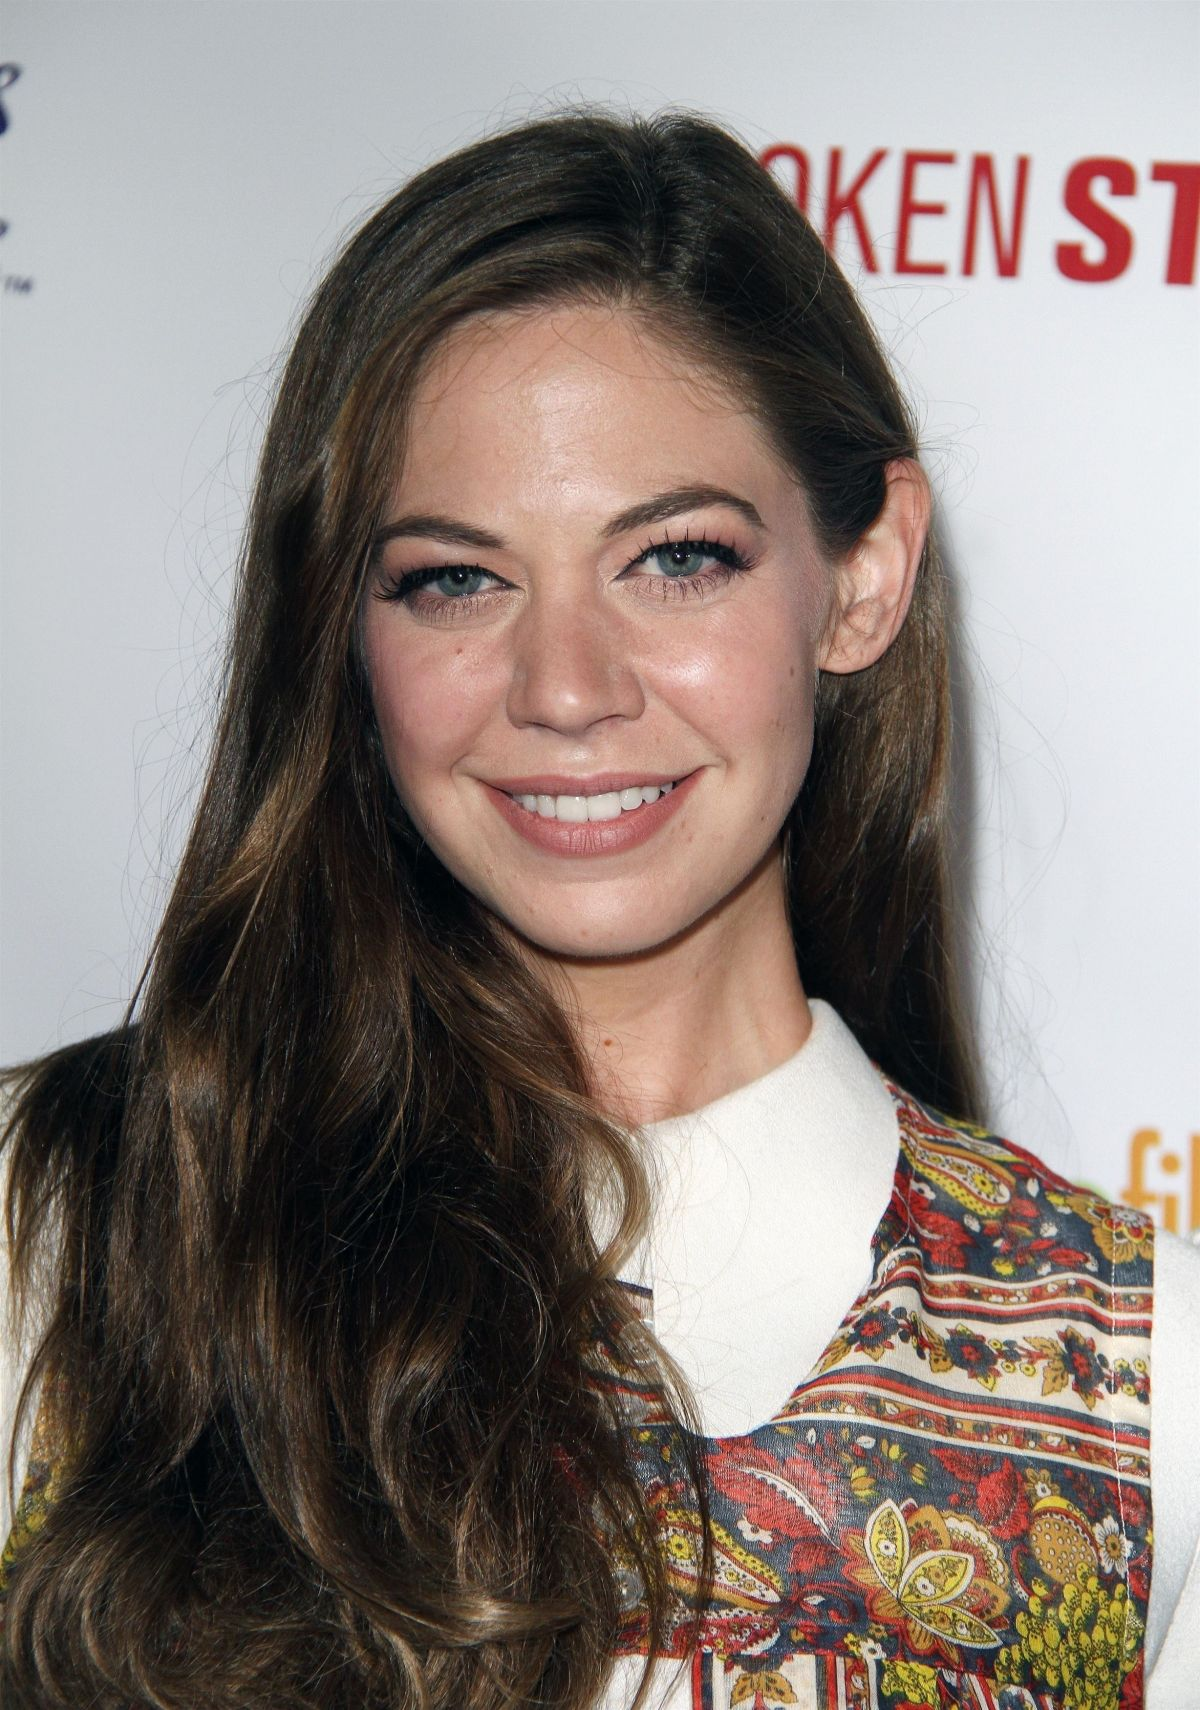 Pussy Fotos Analeigh Tipton naked photo 2017